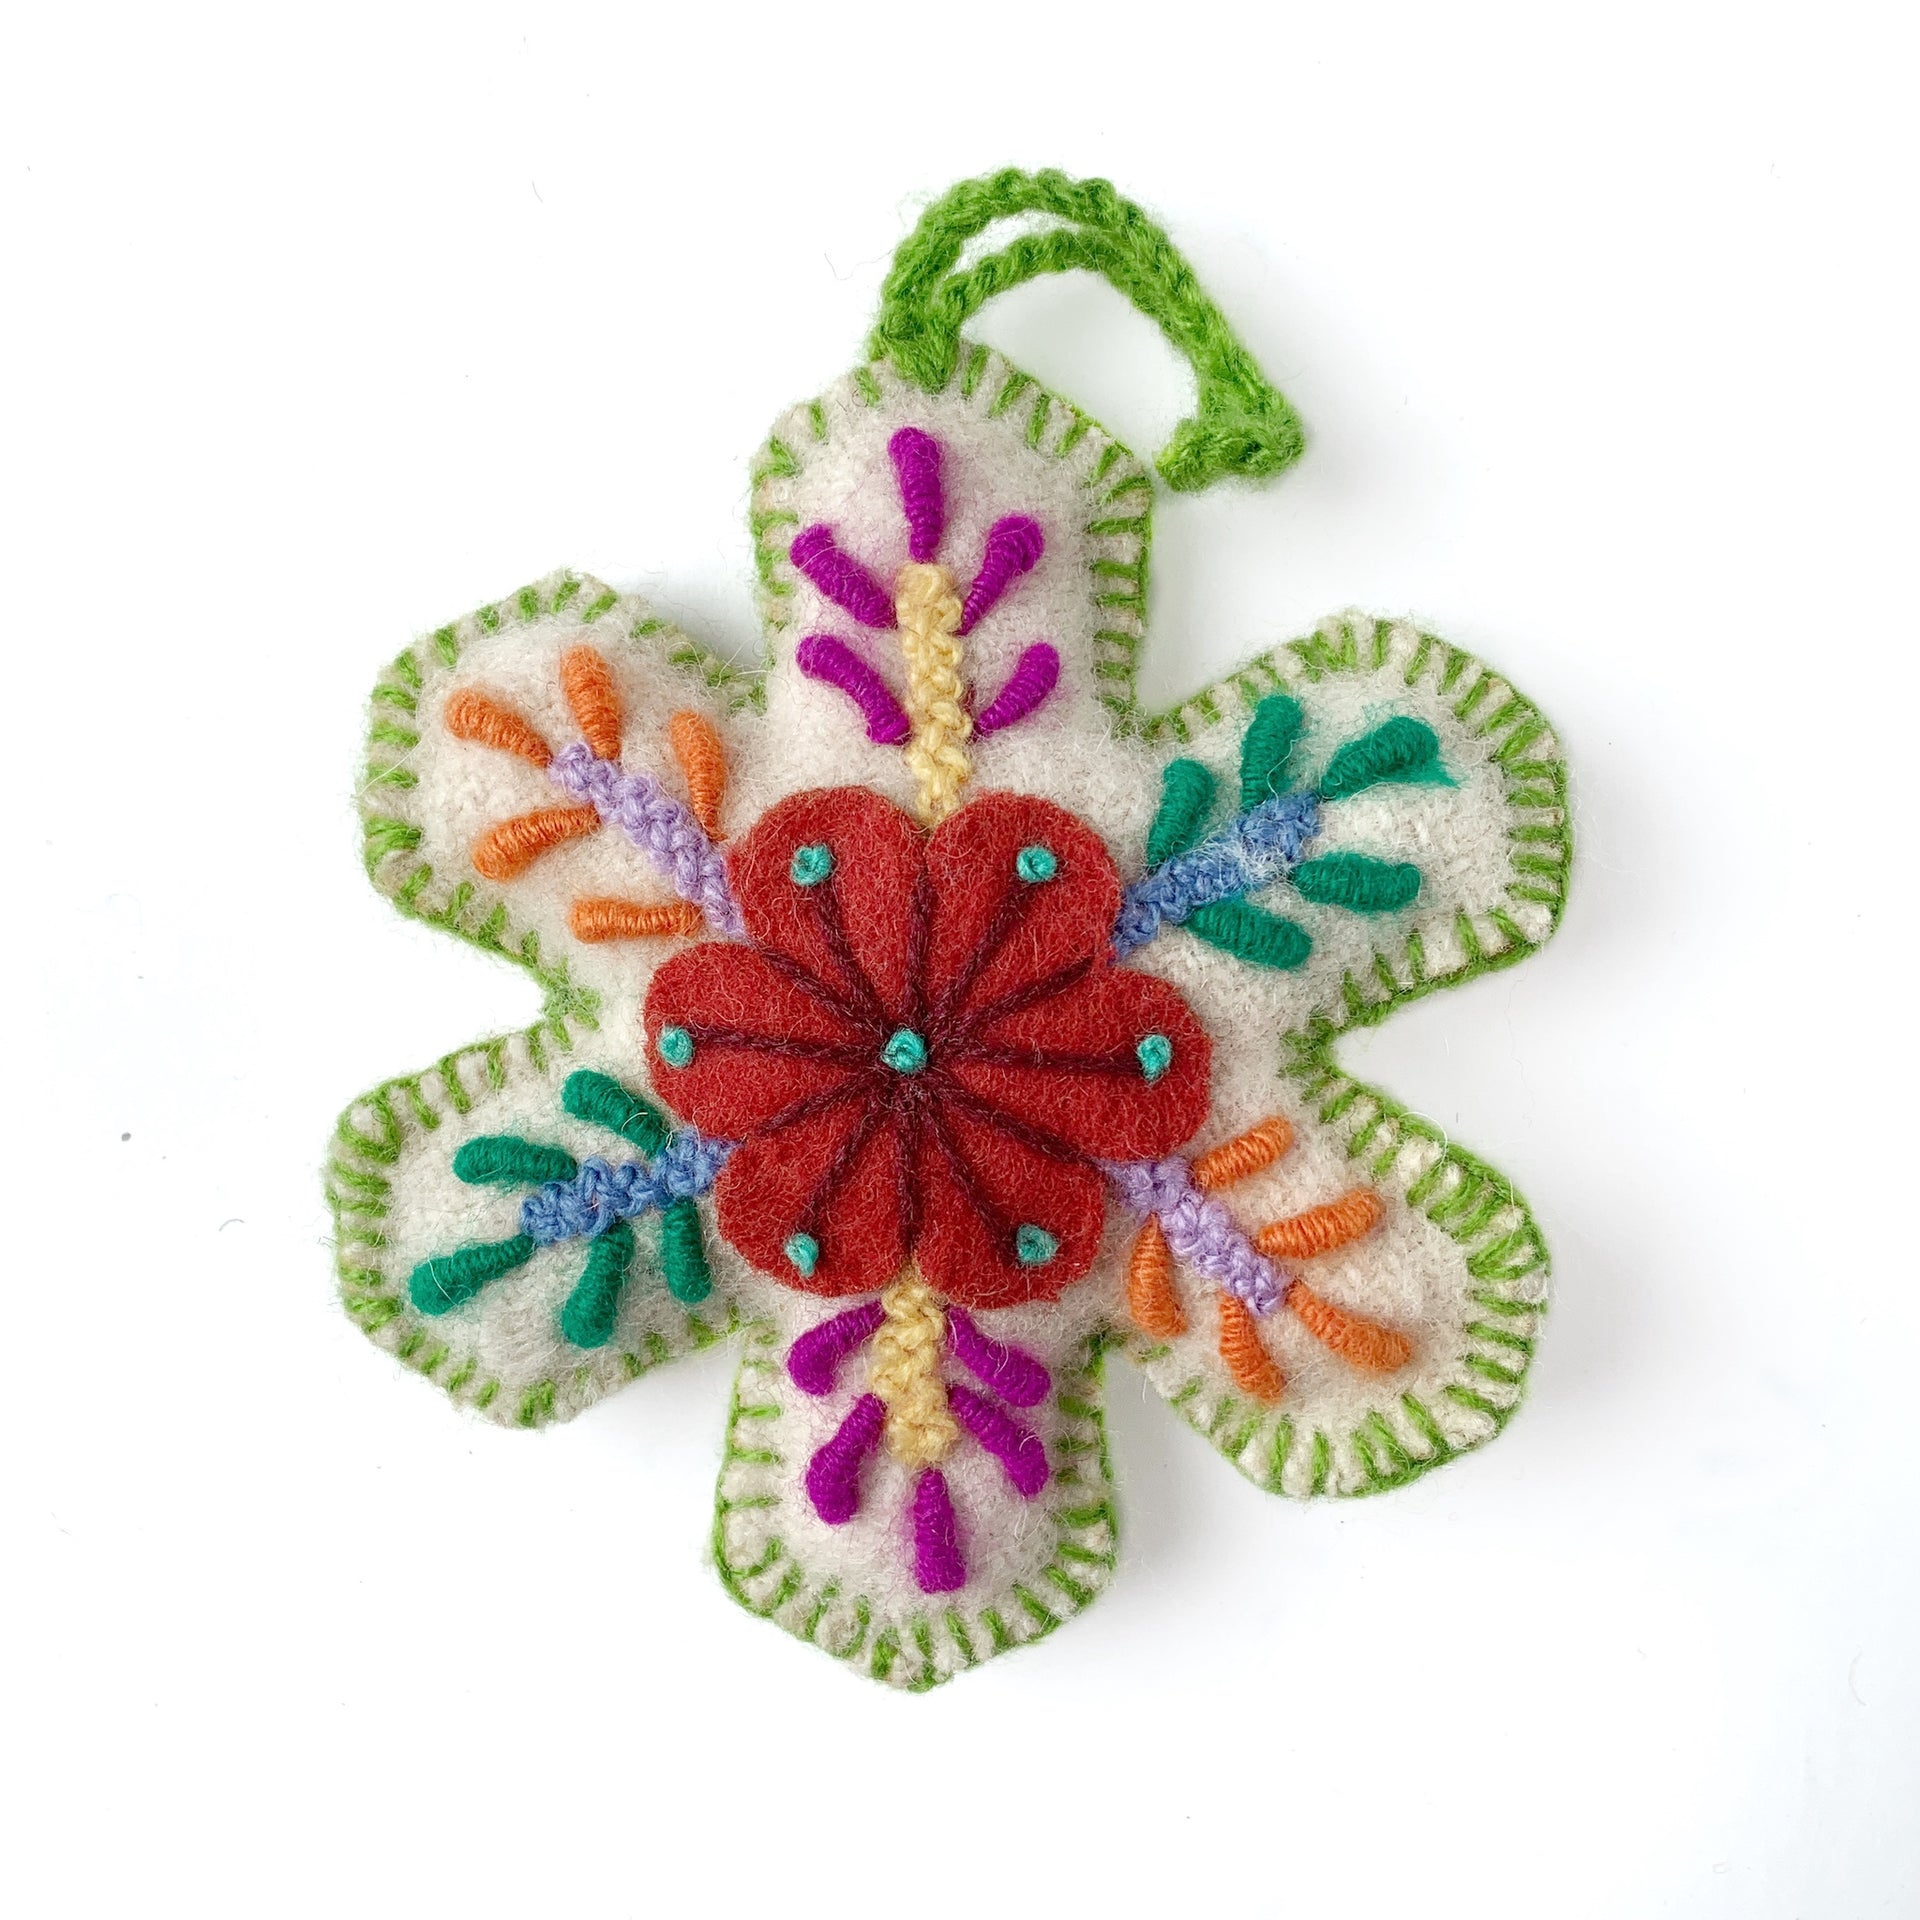 Embroidered Snowflake Ornament Light Green Handmade Peru